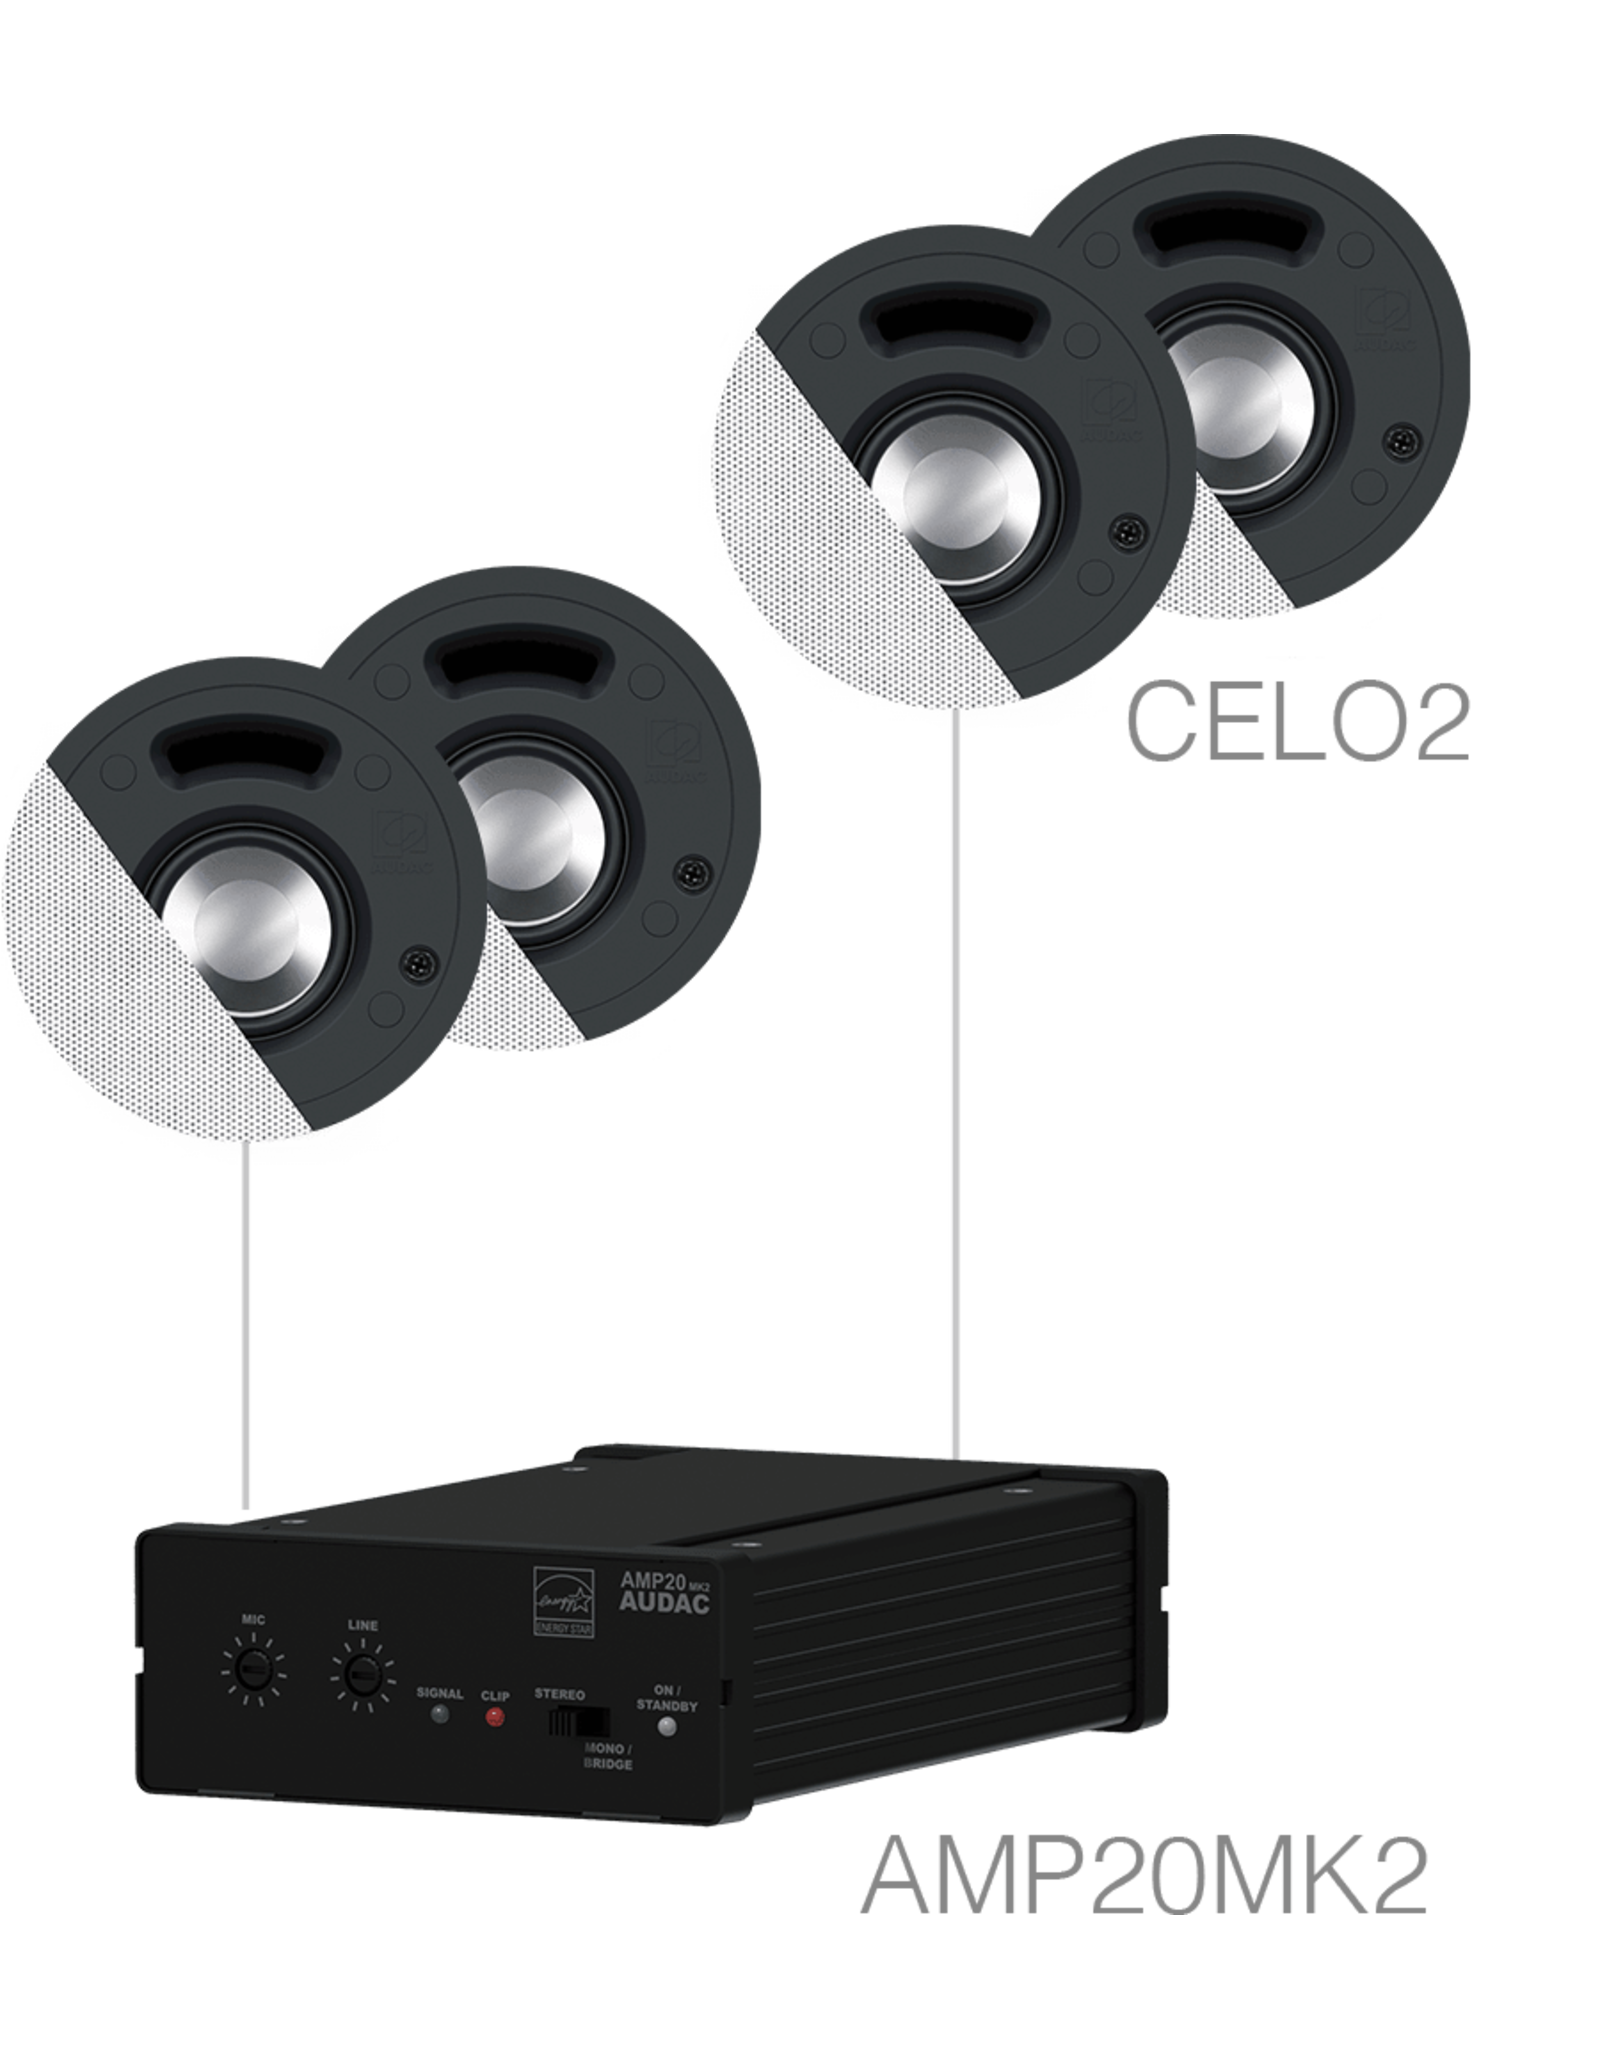 Audac 4 x CELO2 + AMP20 White version